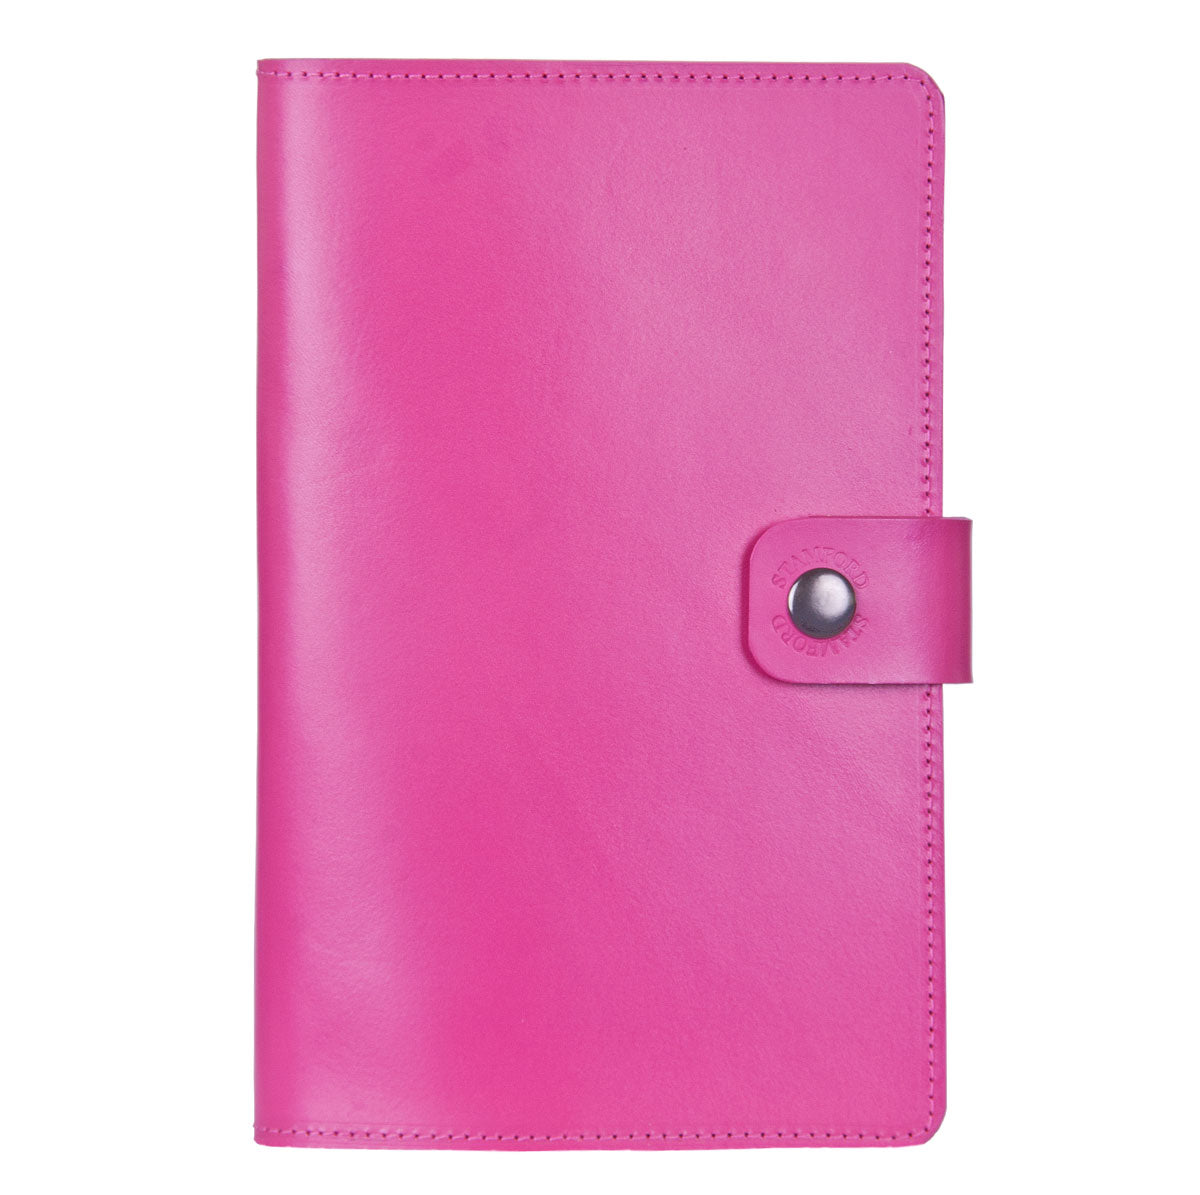 Bright Pink Burghley leather refillable journal